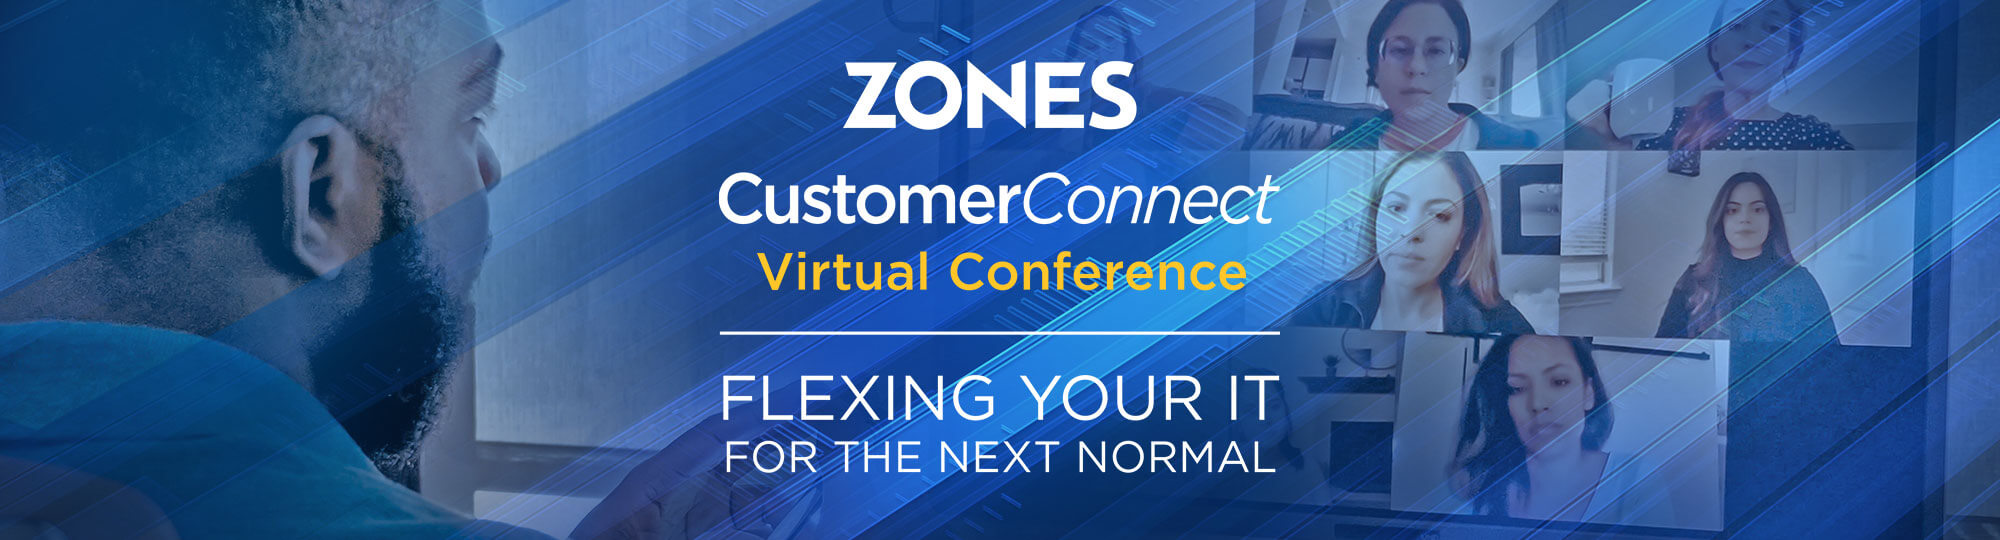 Register Now for Zones CustomerConnect: Virtual Conference May 25 2021 - Flexing your IT for the next normal